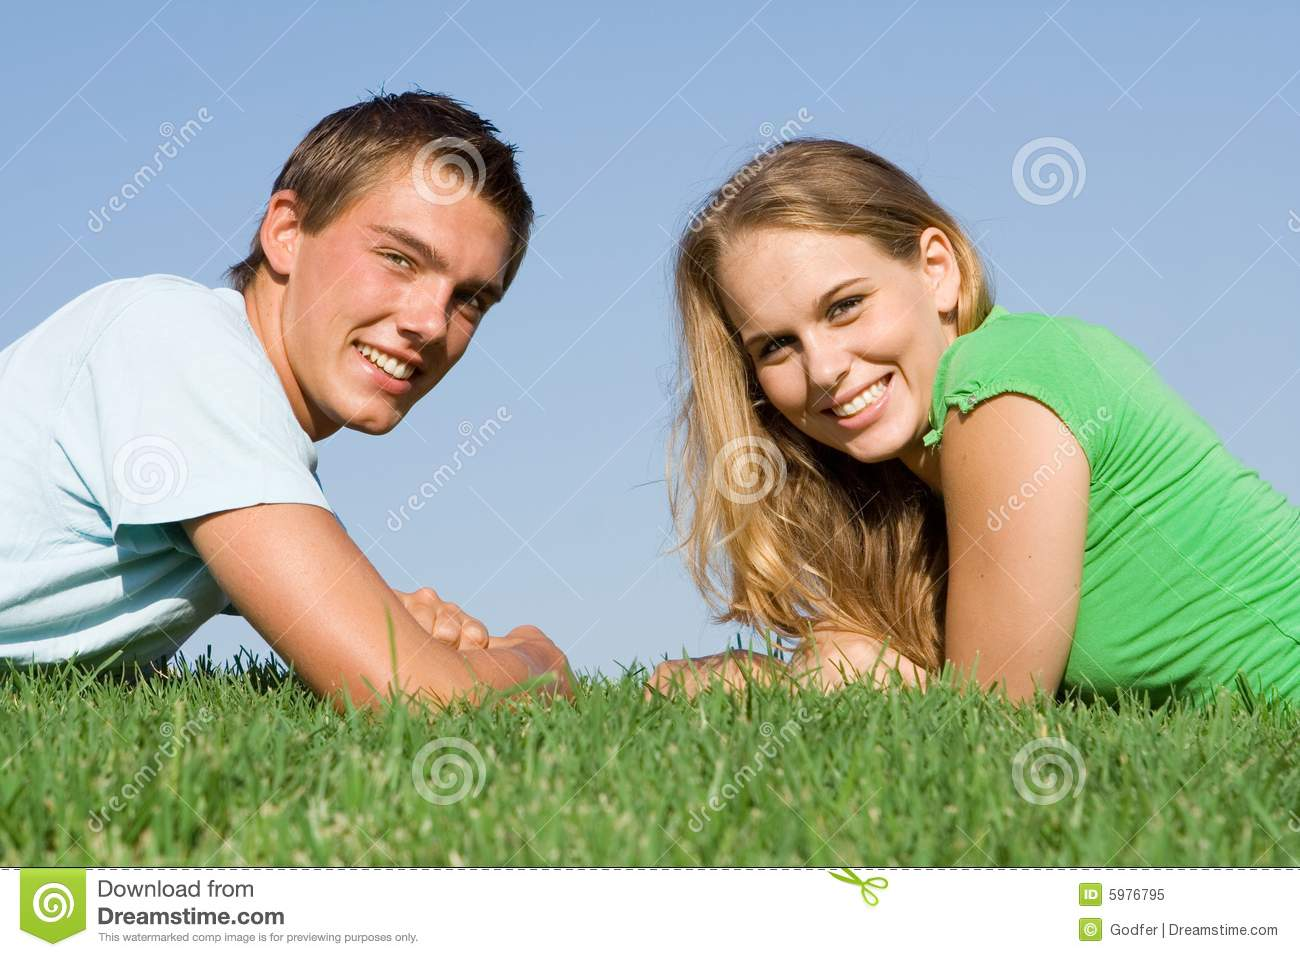 download hot teen couples free